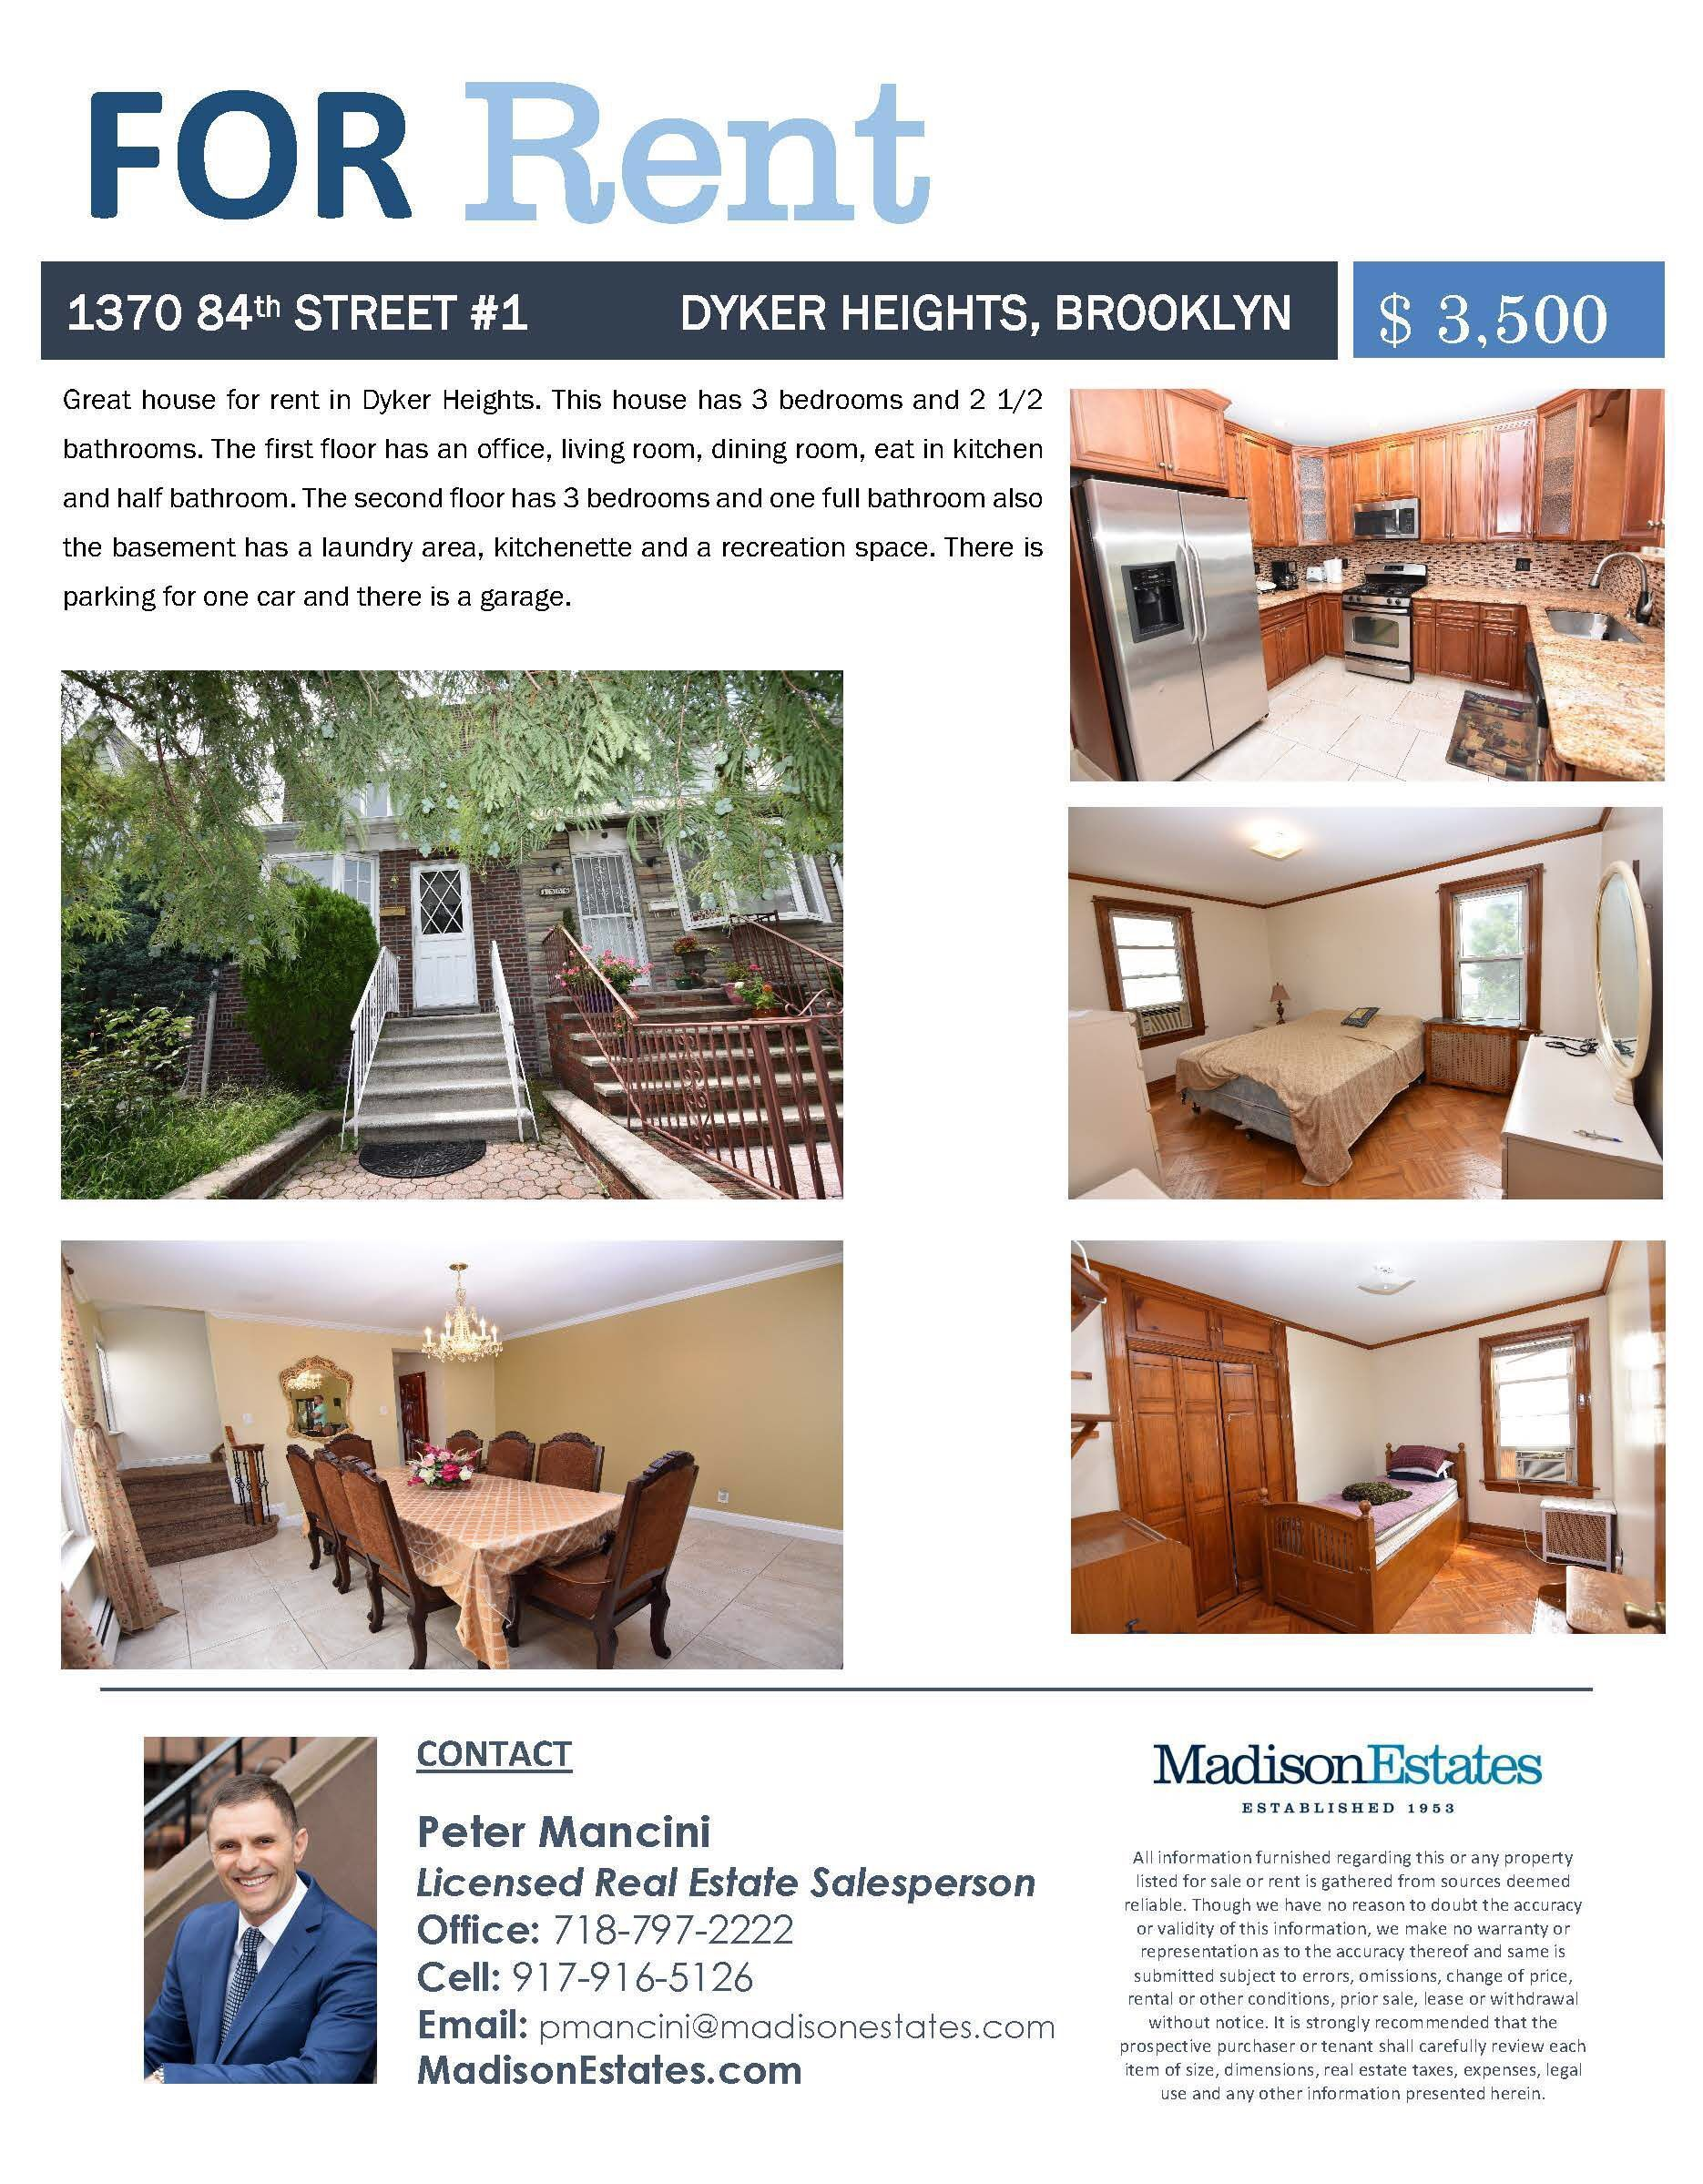 Rentals In Dyker Heights Rentals Renters Forrent Brooklyn 2 Bedroom Apartment Bedroom Apartment Renting A House